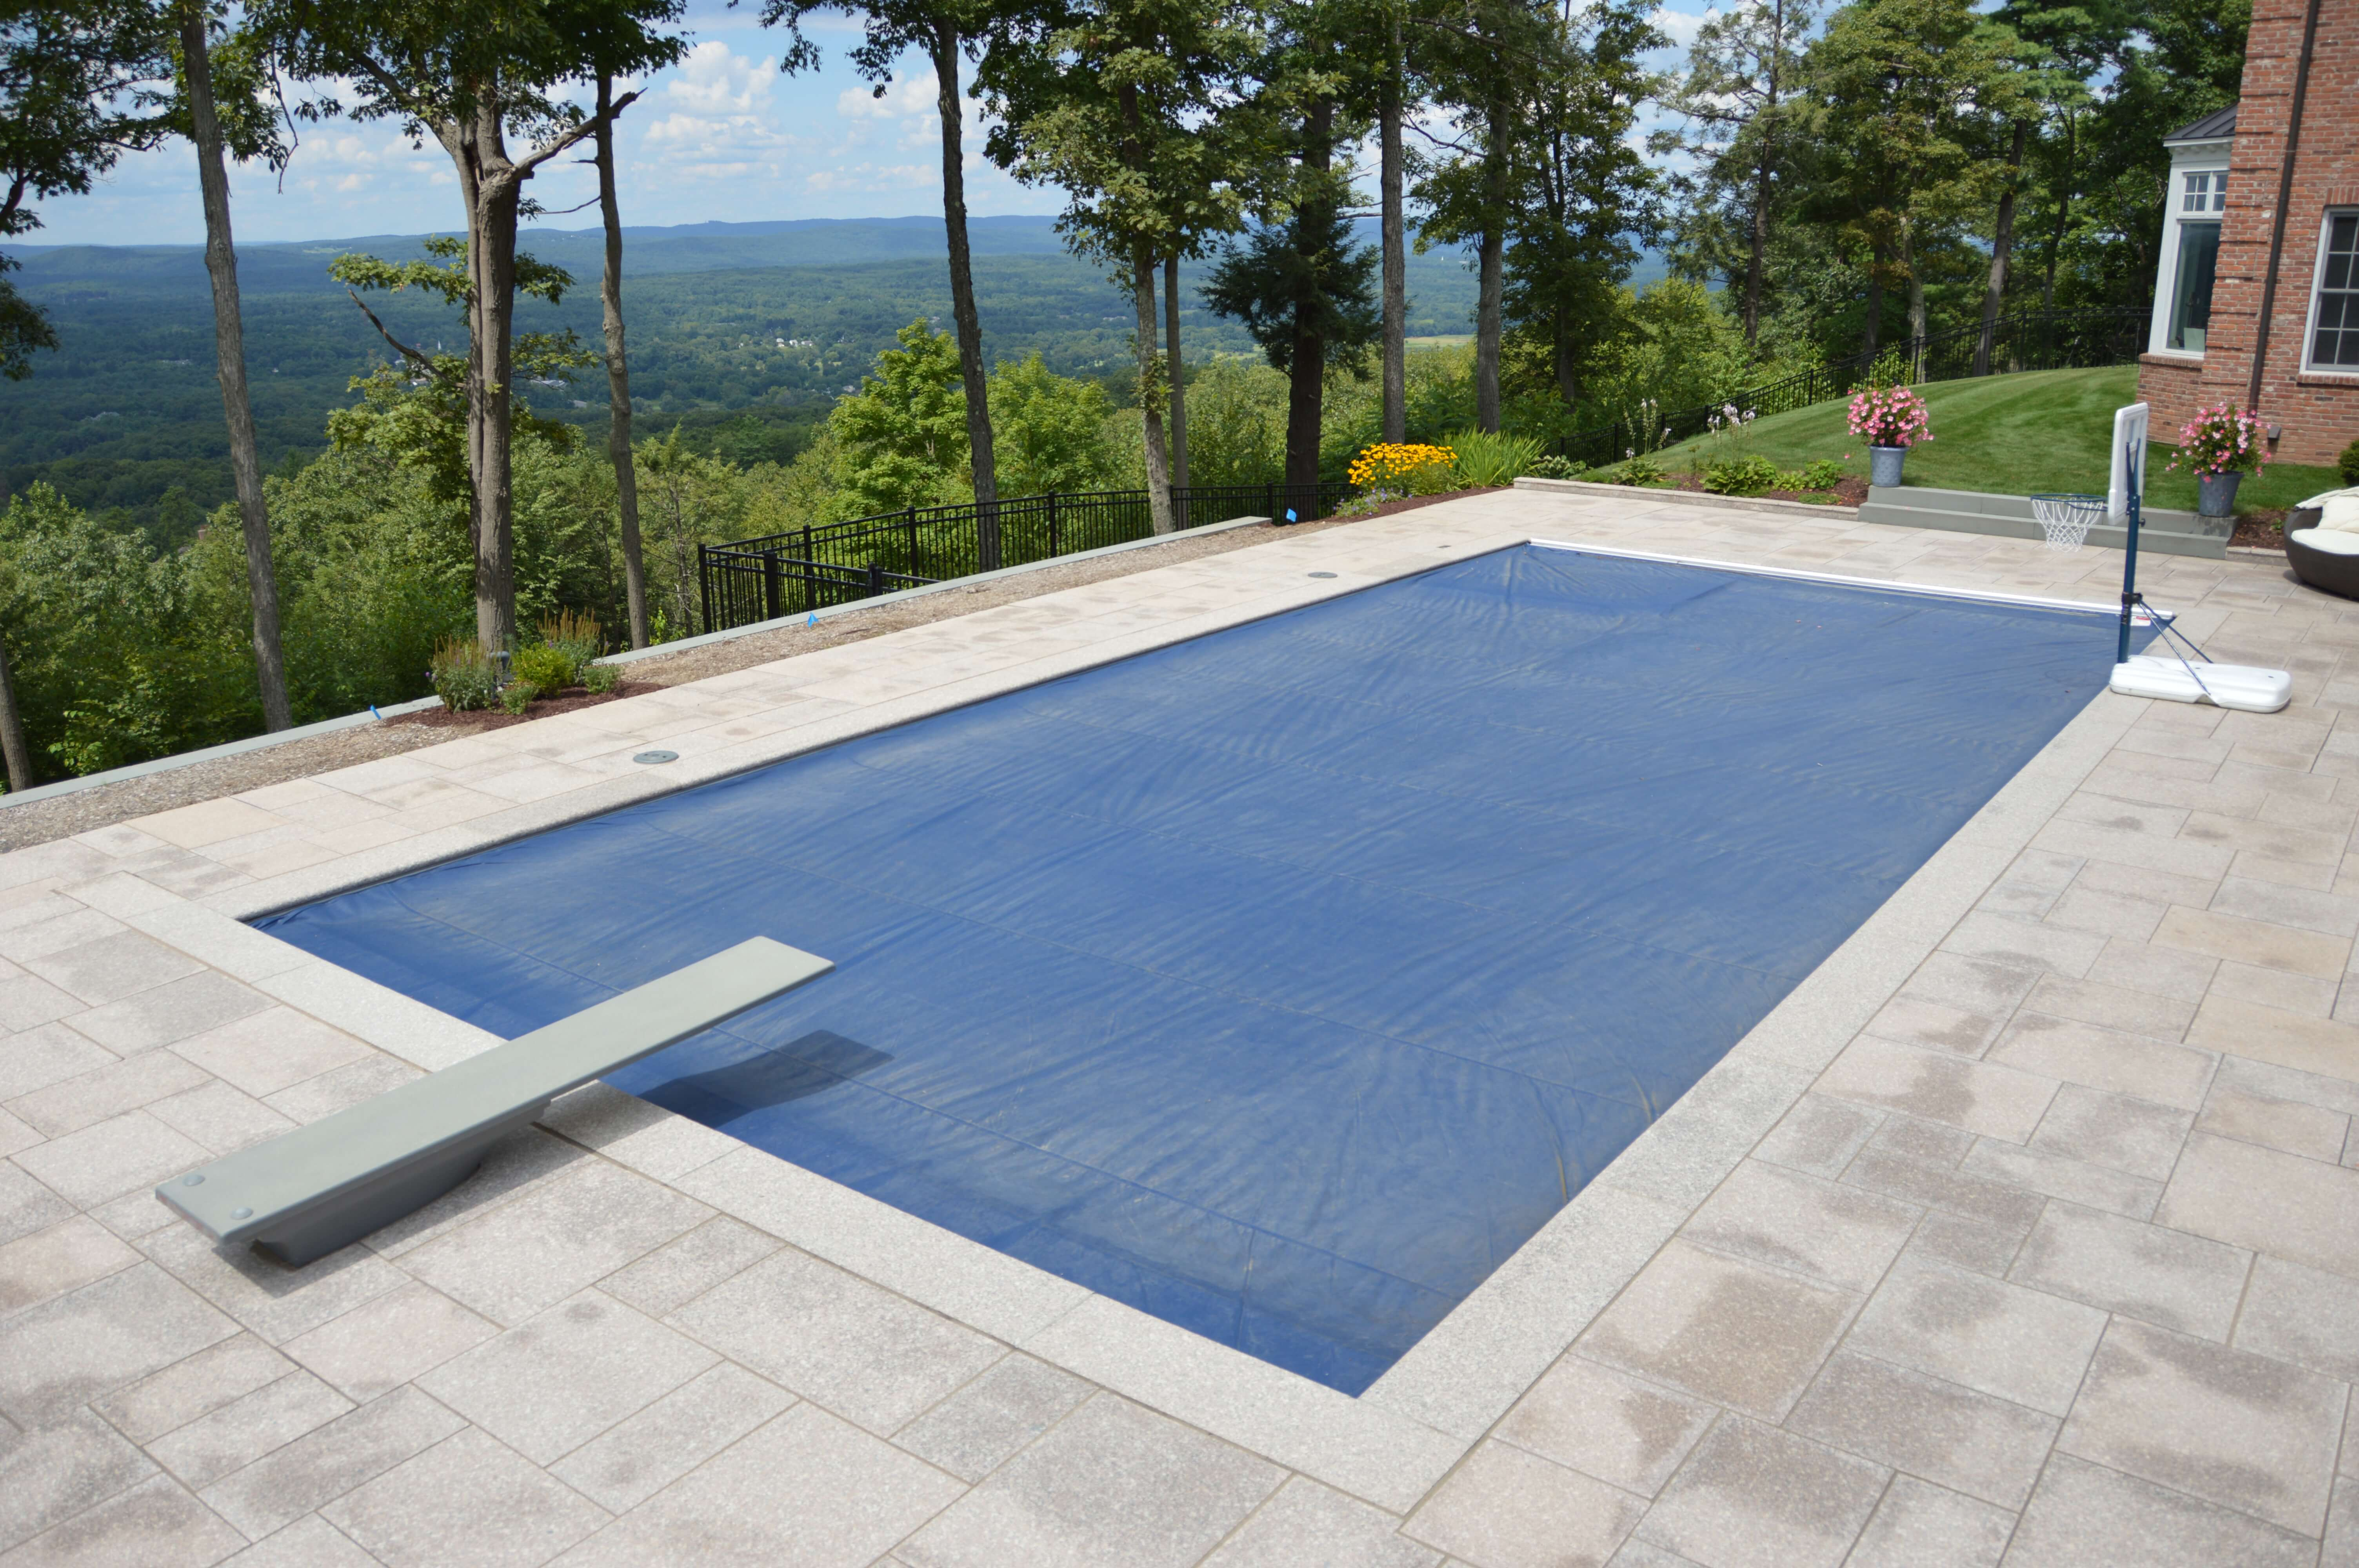 The Best Pool Covers for Inground Gunite Pools